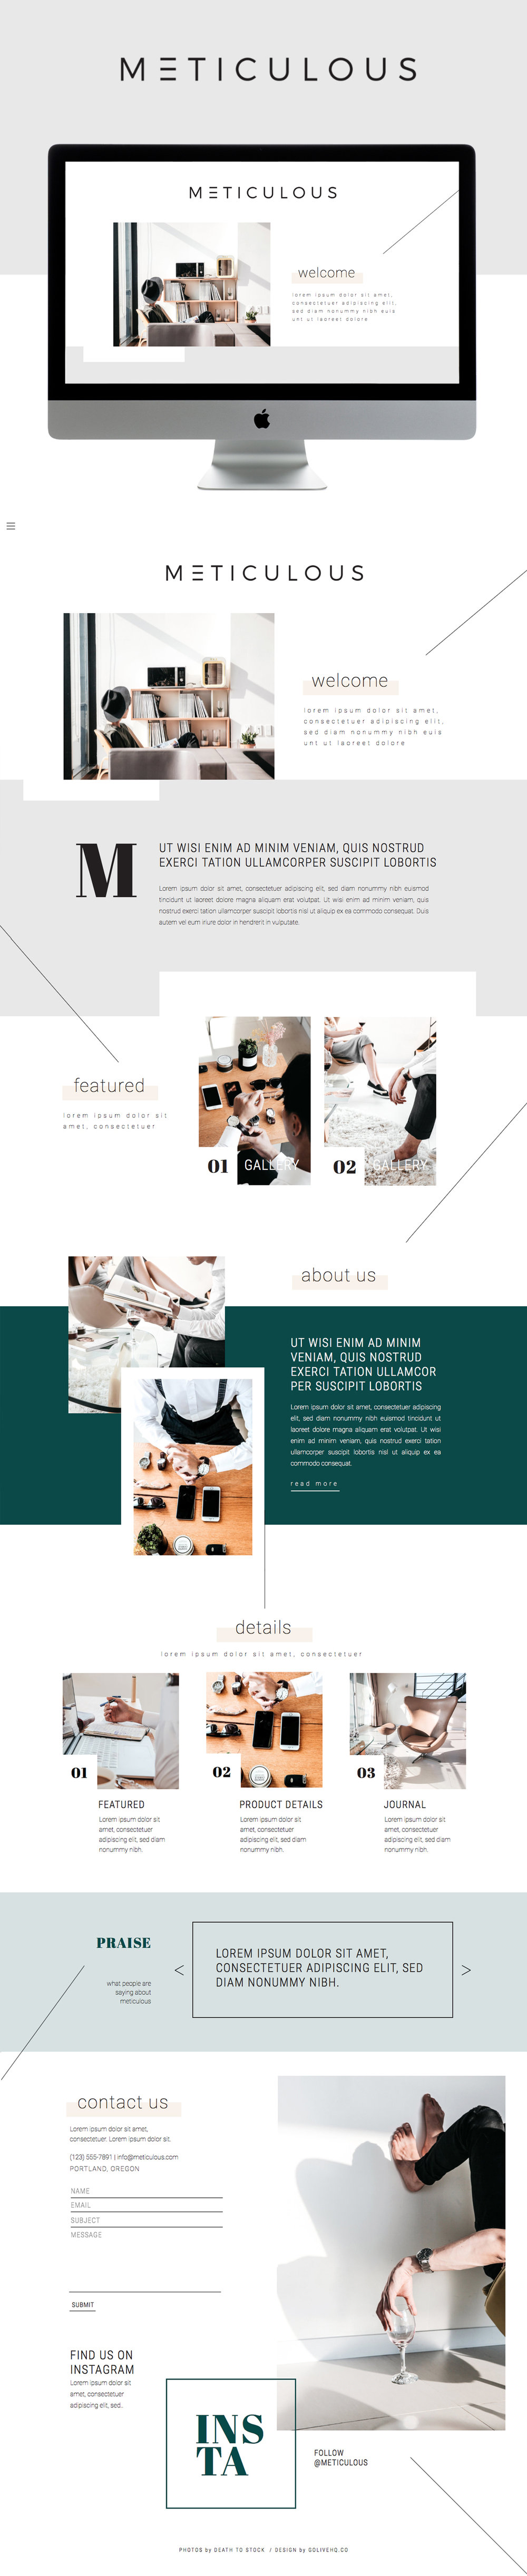 modern showit website theme by Go Live Hq